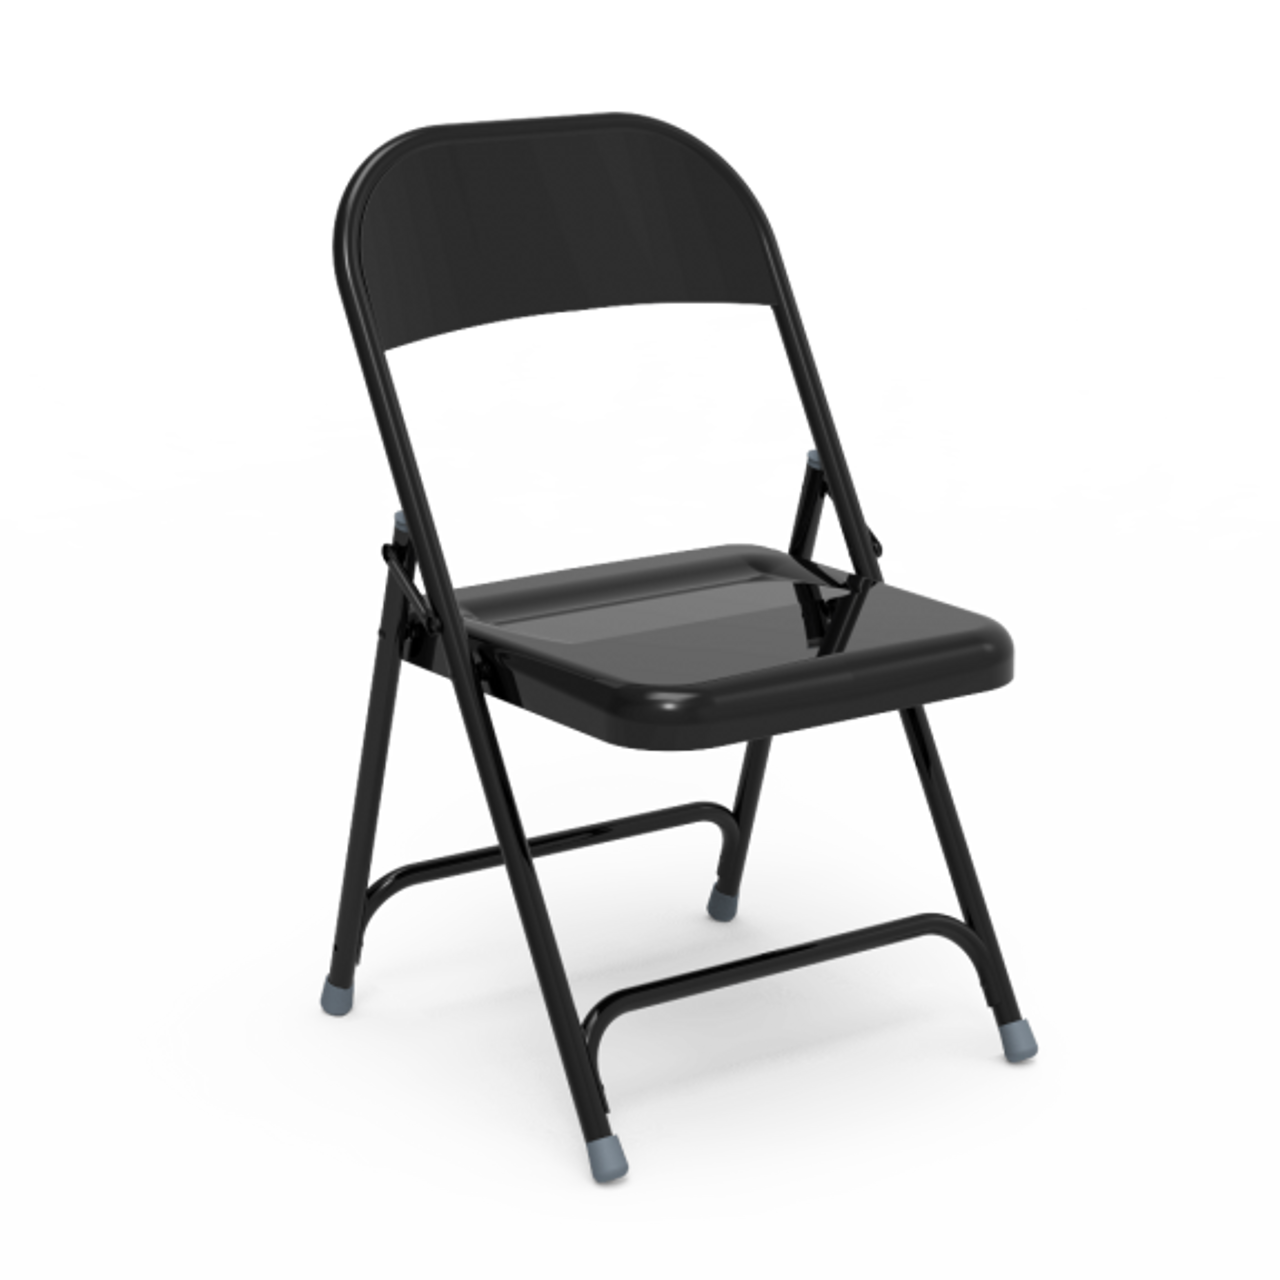 162 Series Steel Folding Chair Char Black Frame Set Of 4 Chairs